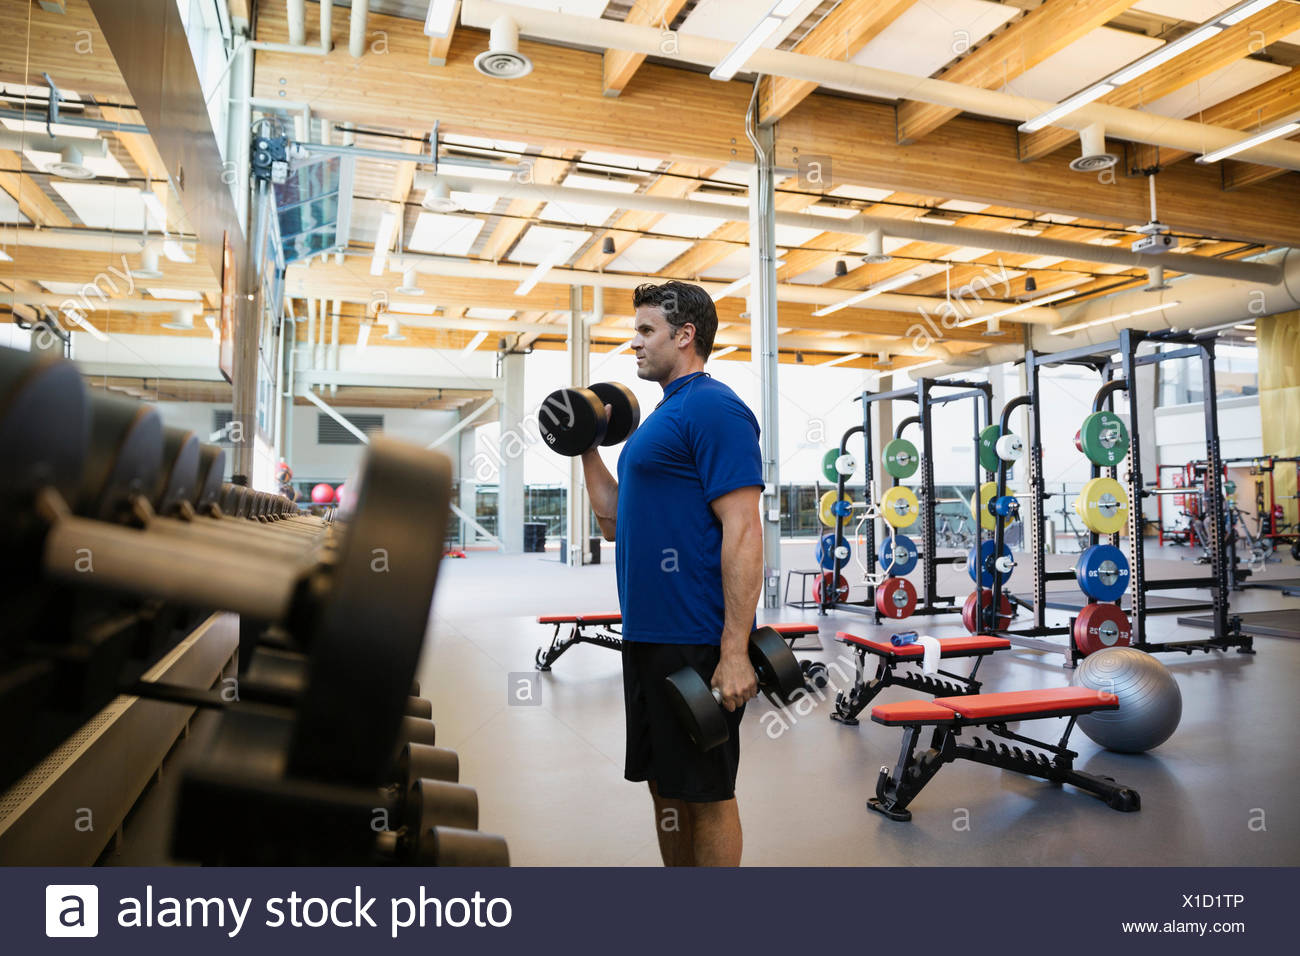 Man doing dumbbell biceps curls at gym - Stock Image